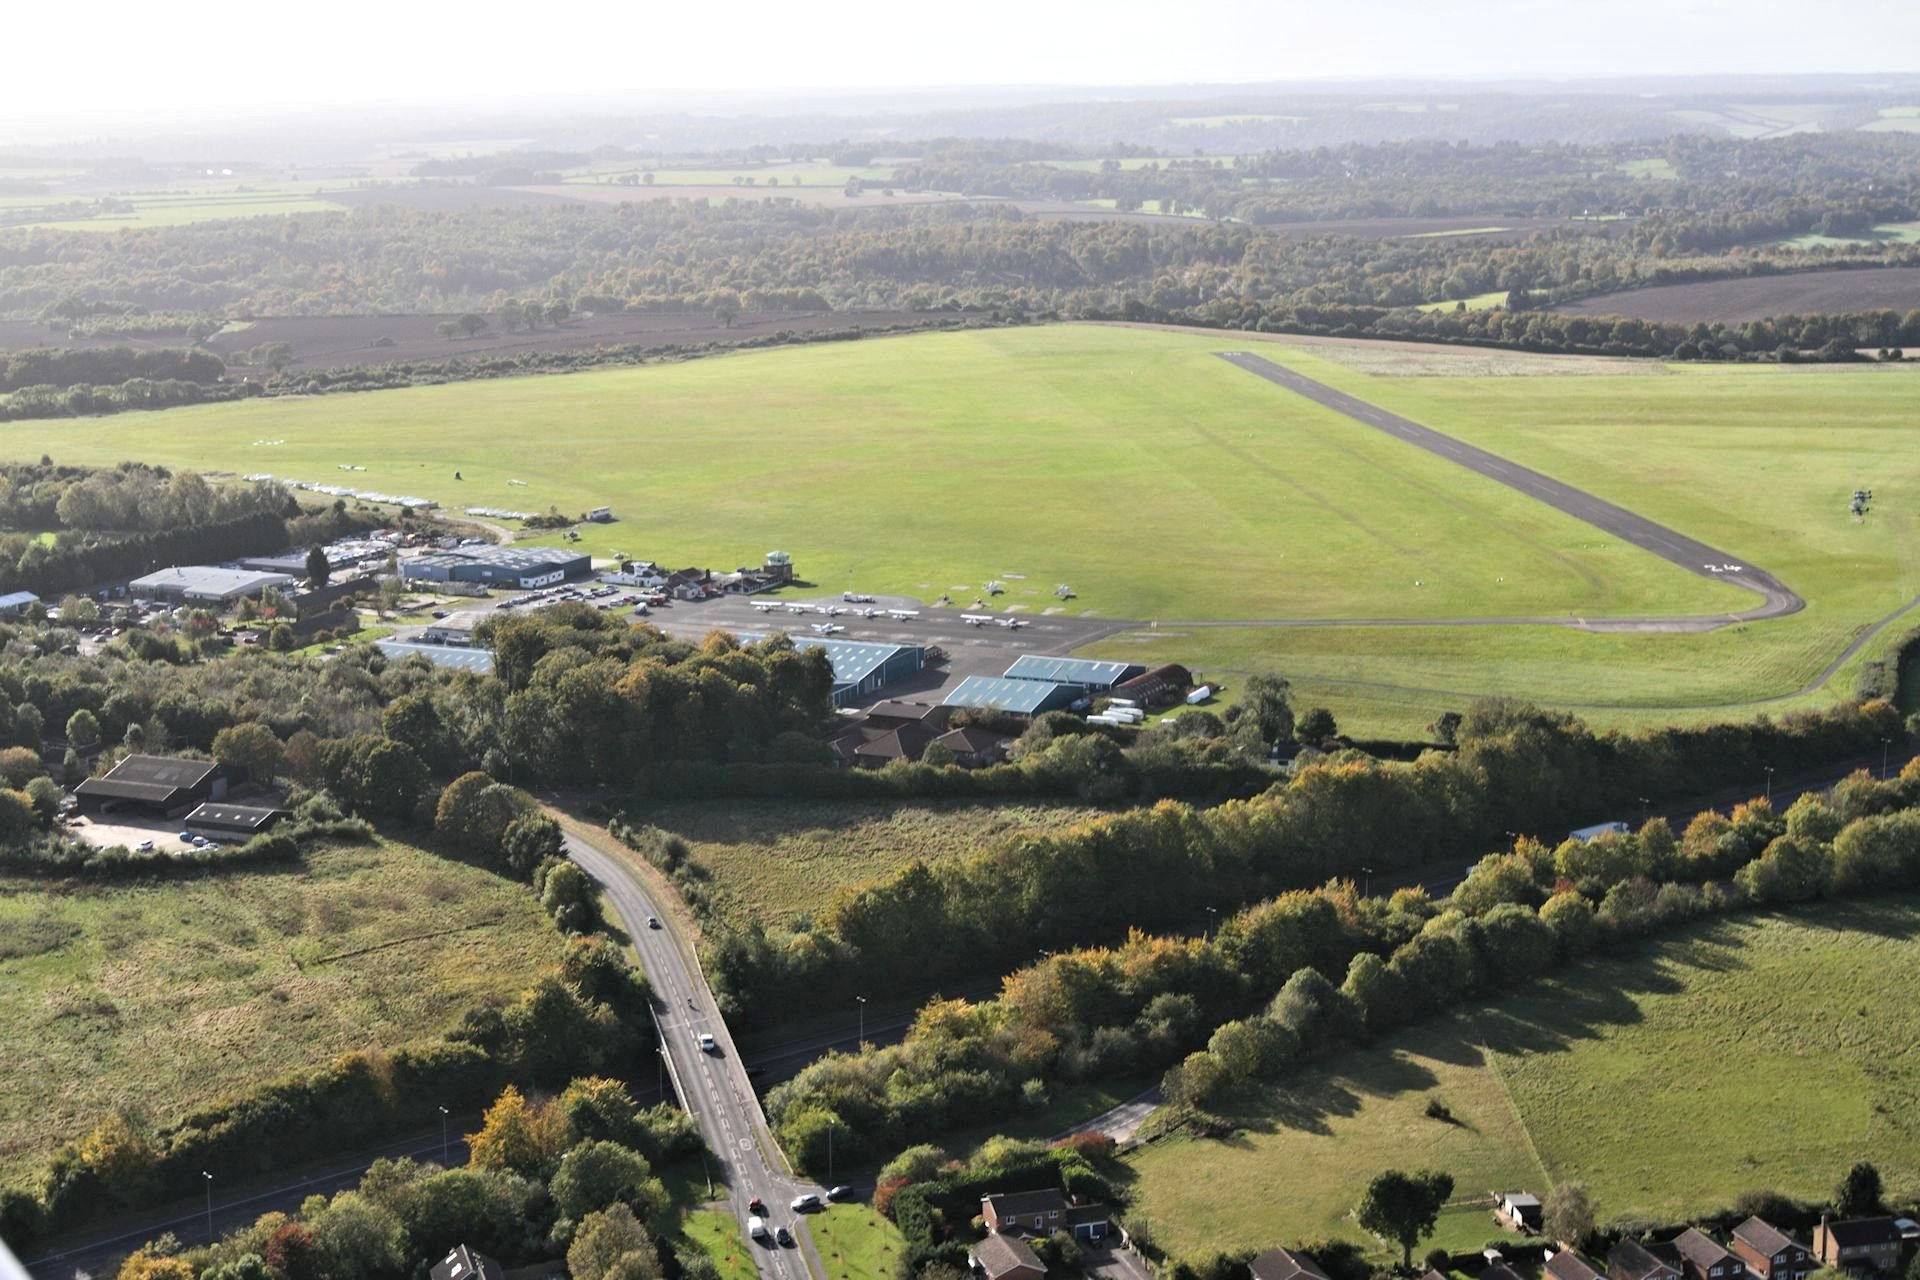 London Wycombe Air Park Hangarage for Aeroplanes, Helicopters, Parking, Fuel, Cafe